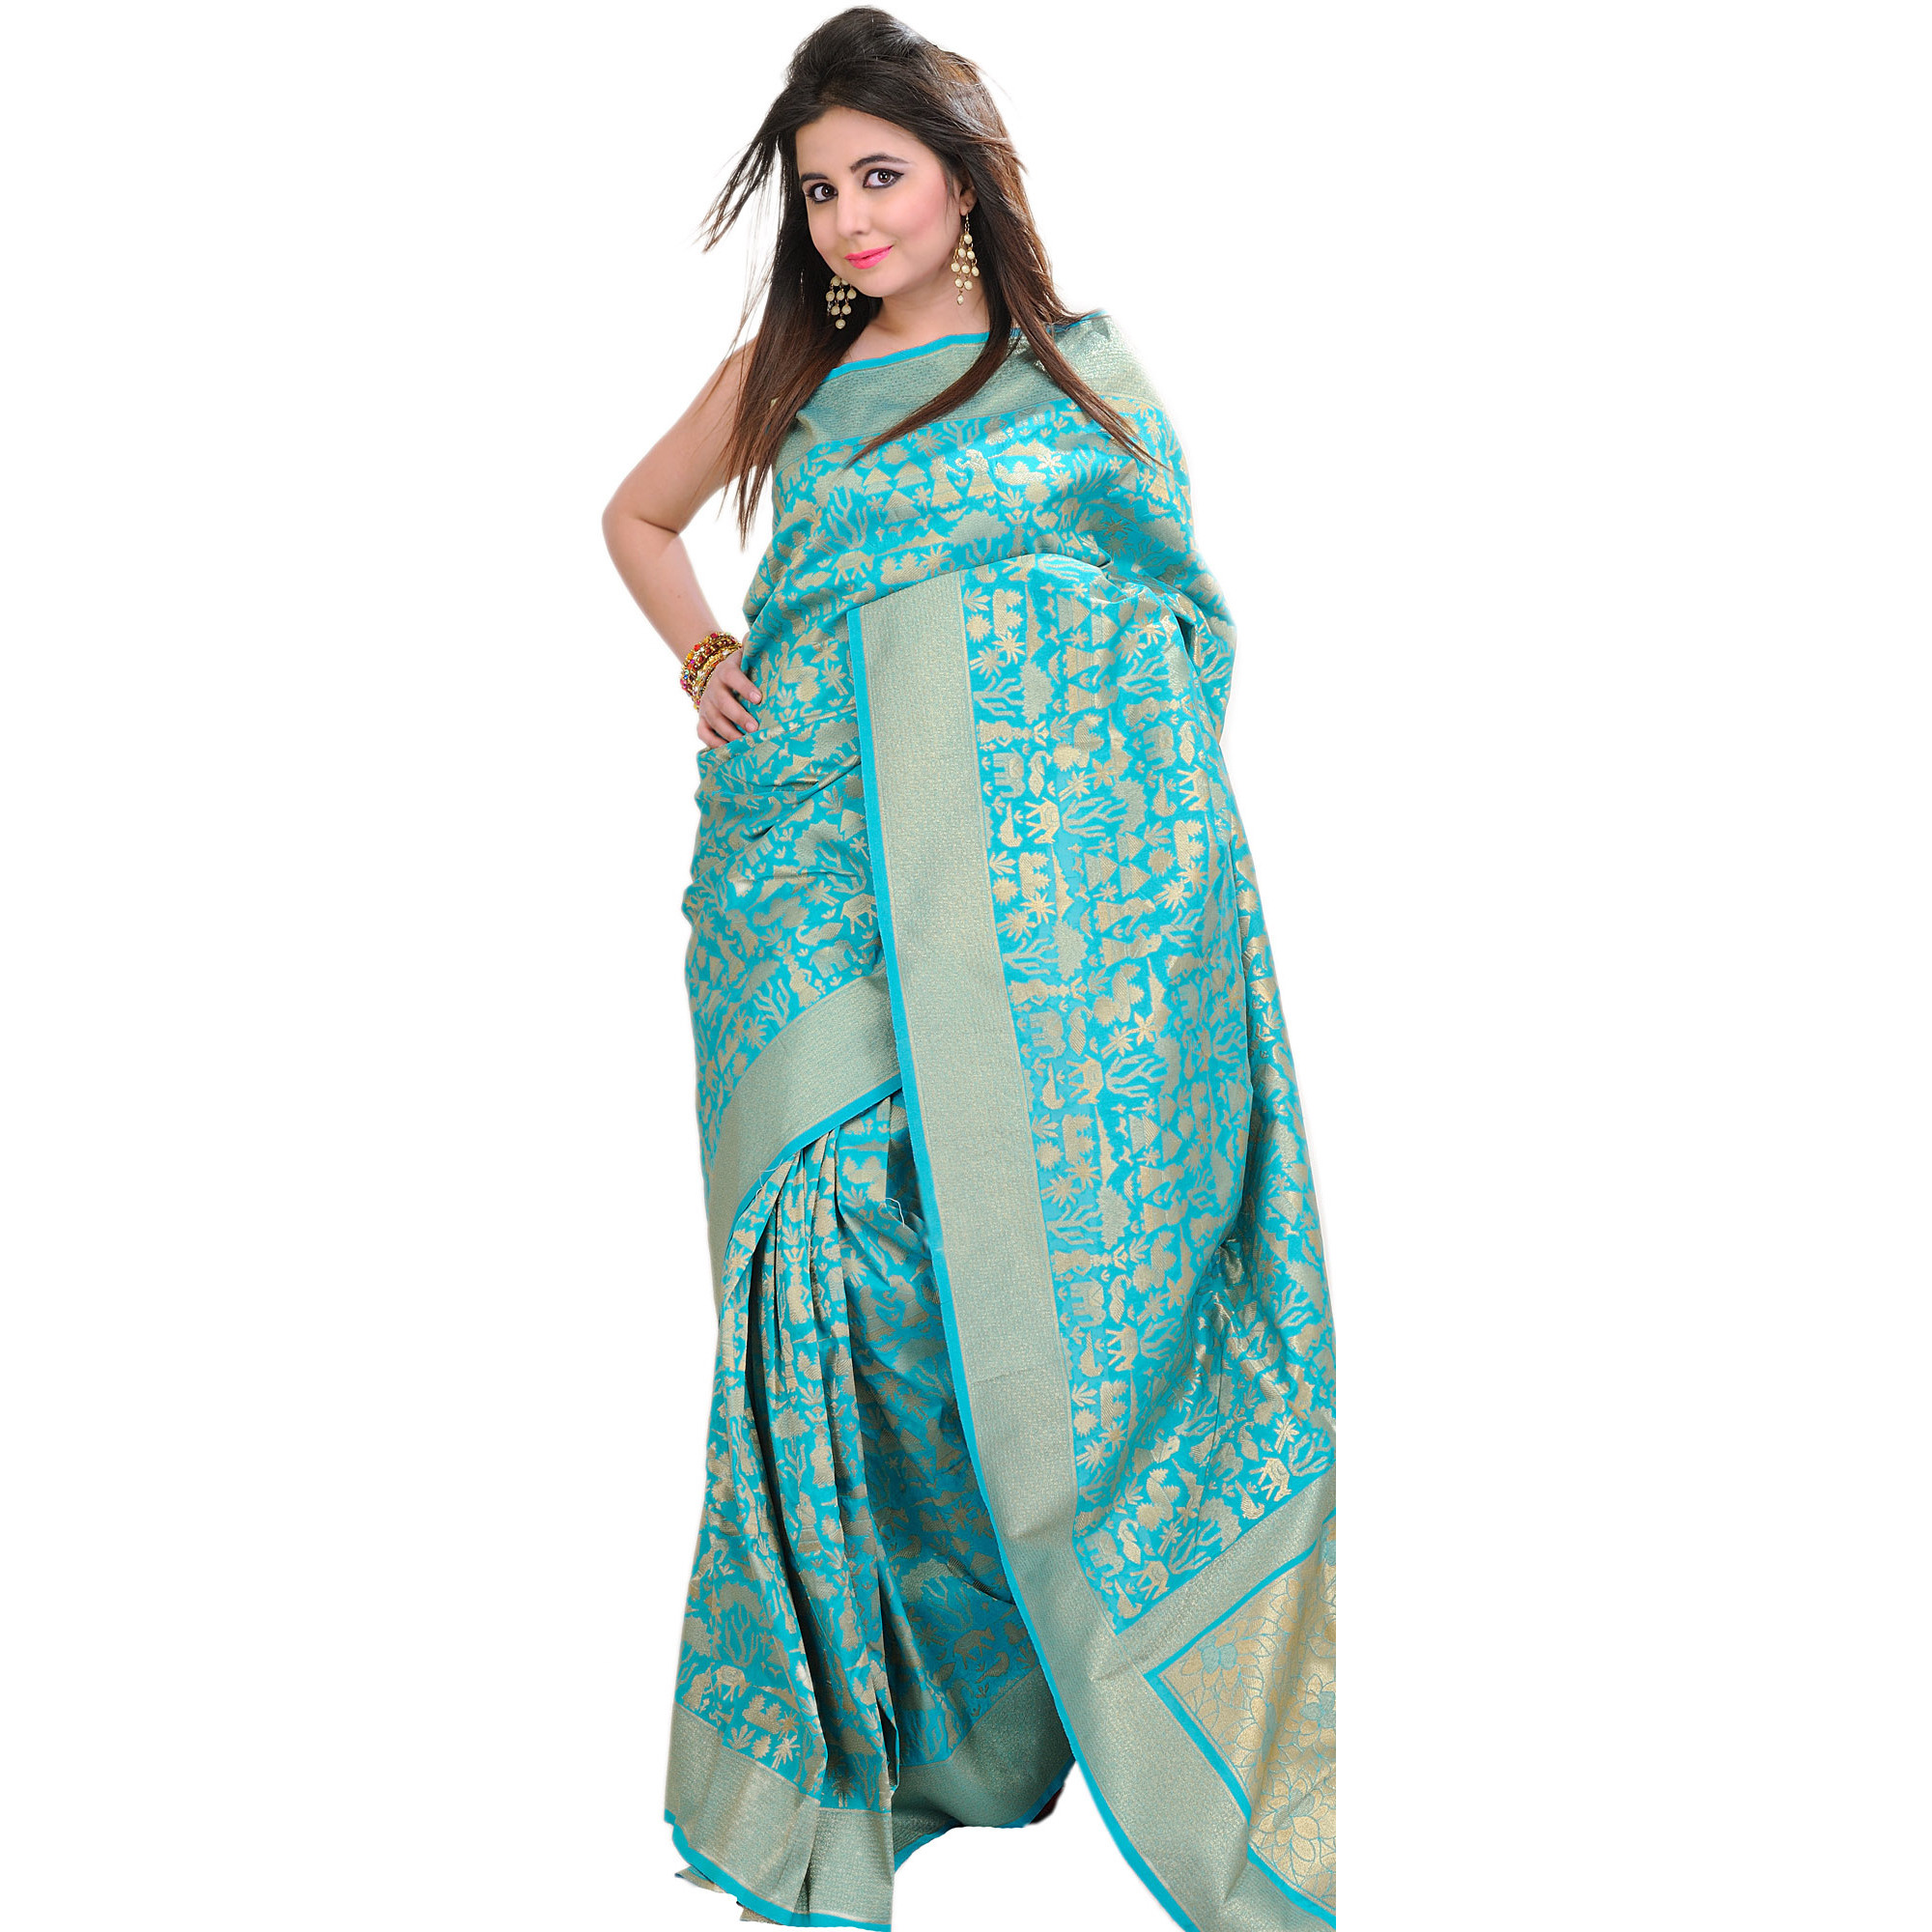 Viridian-Green Banarasi Sari with Woven Egyptian Motifs in Golden Thread